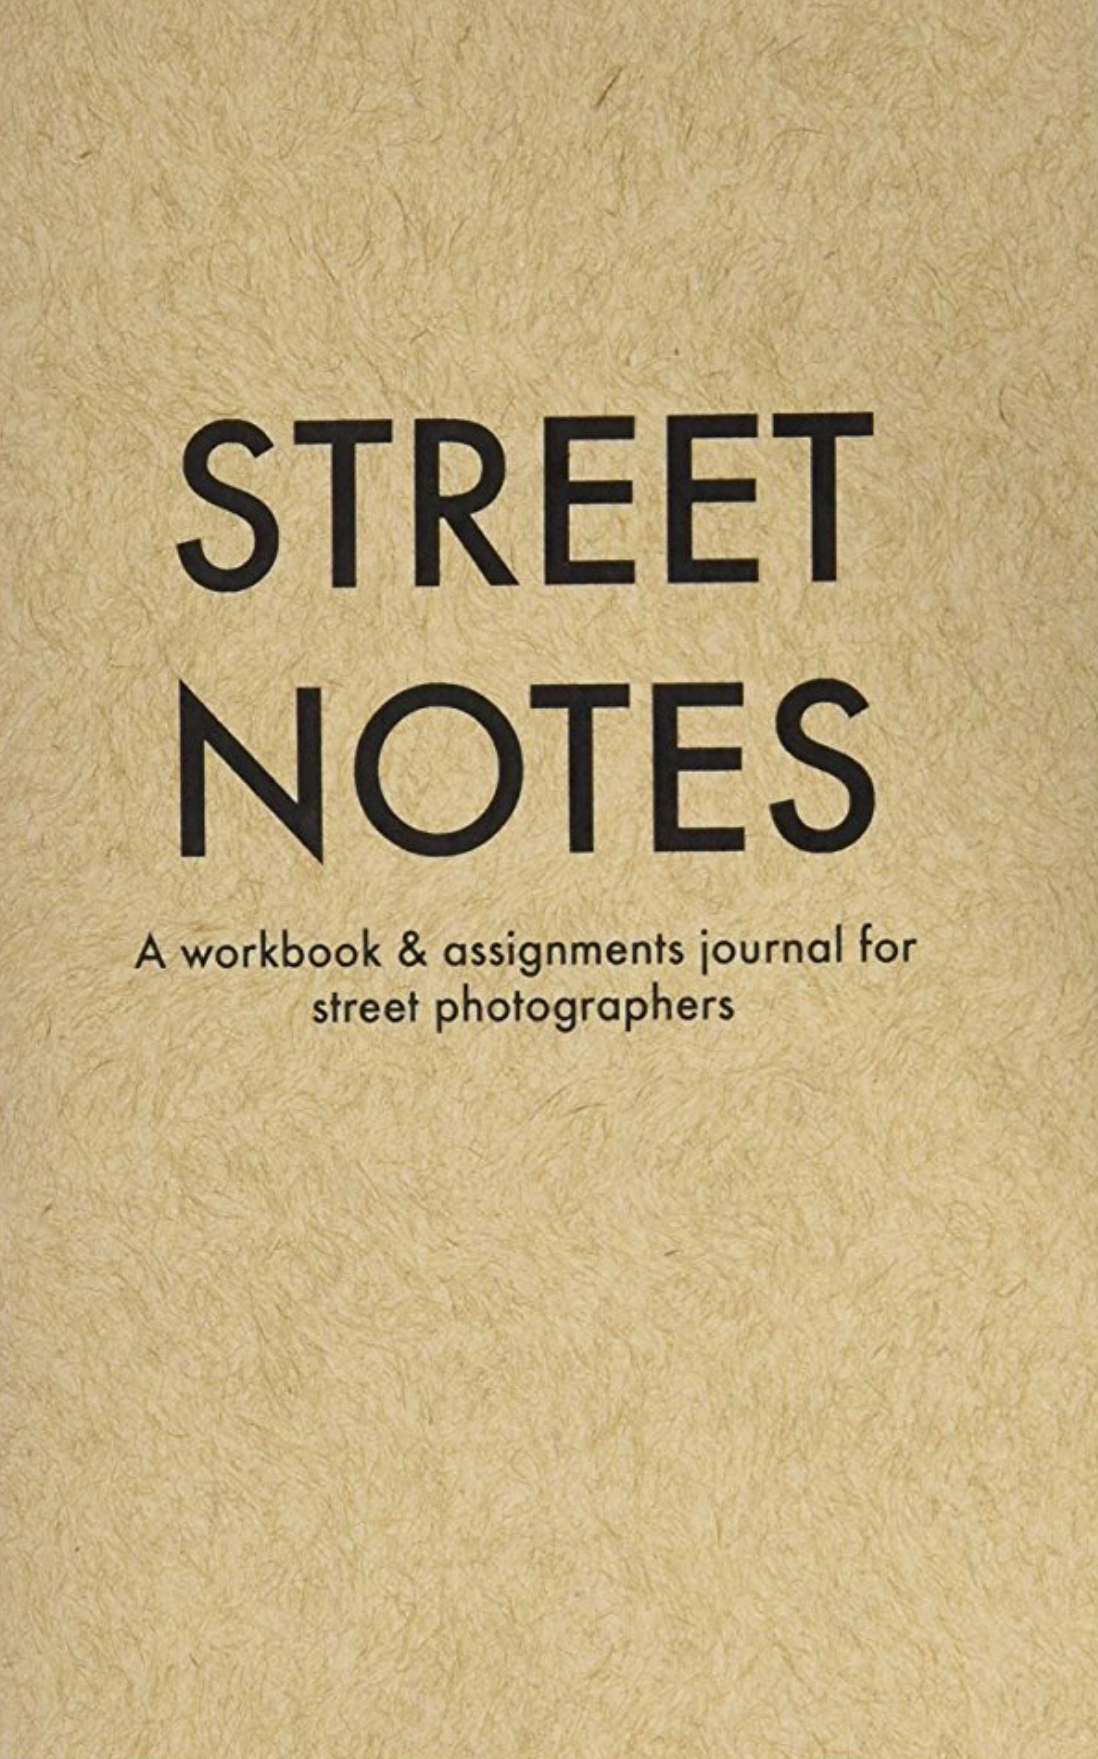 Street notes by haptic press